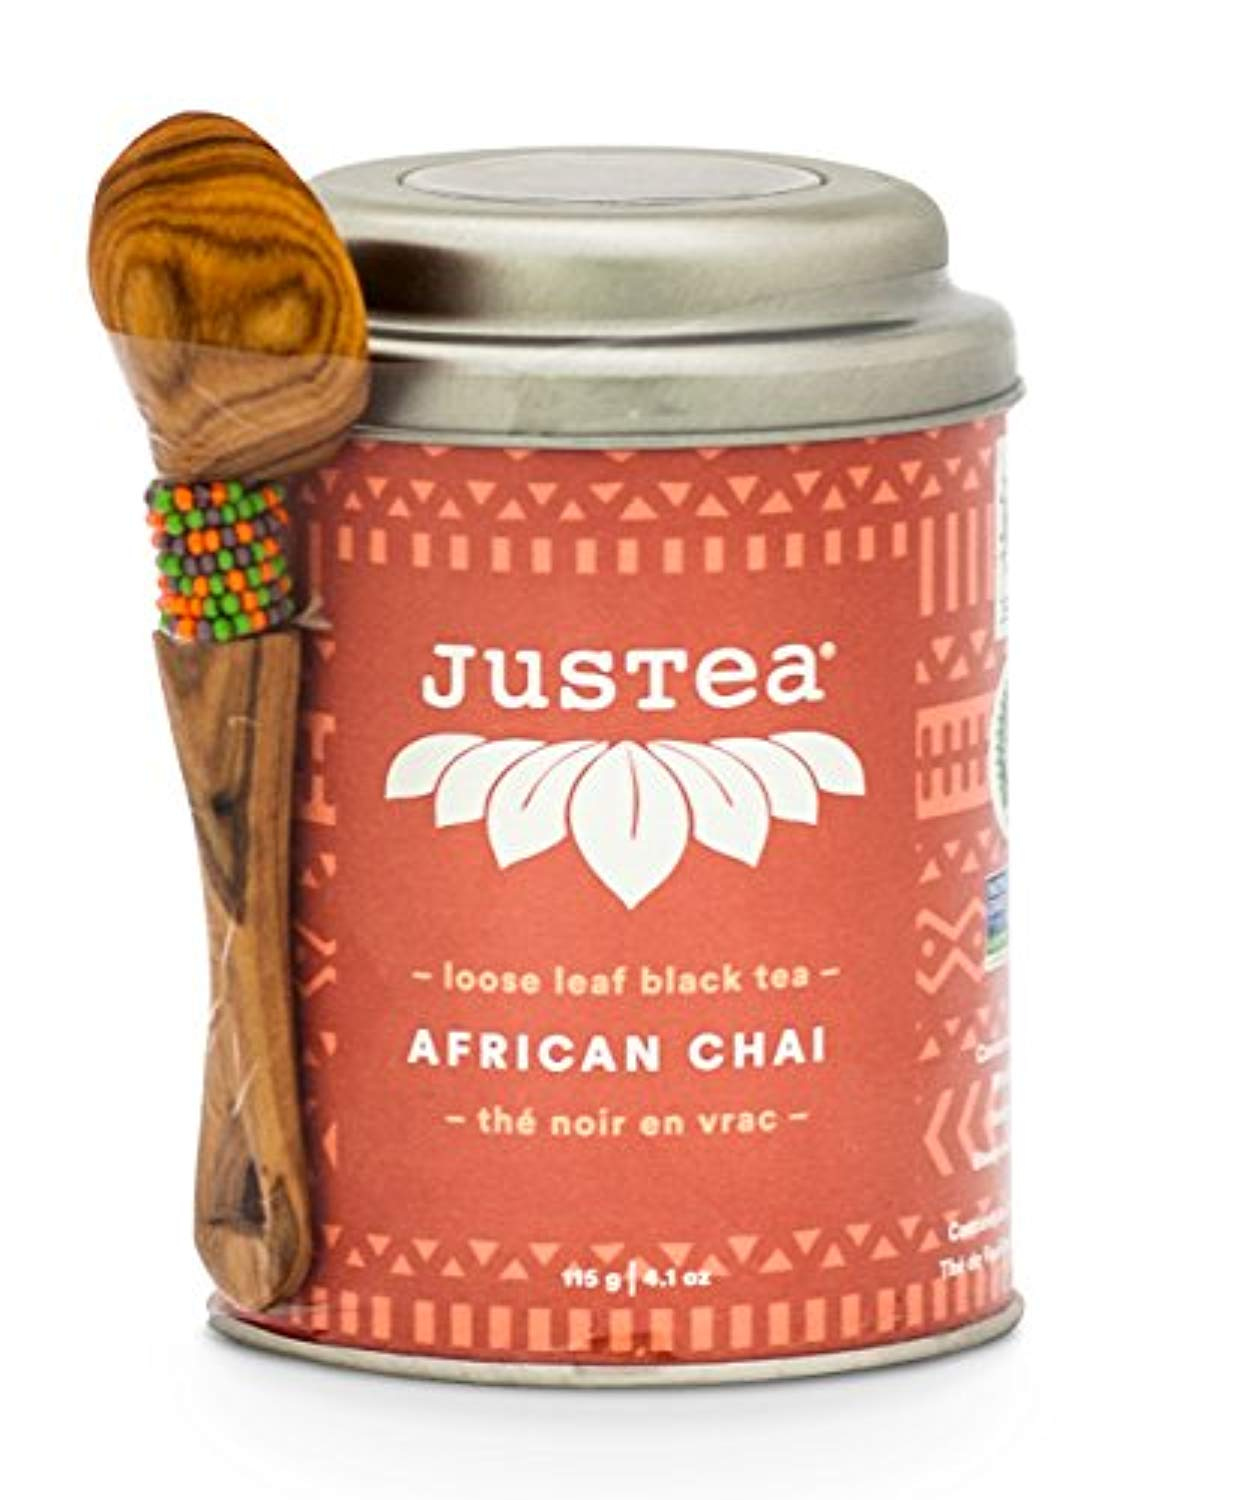 JusTea AFRICAN CHAI | Loose Leaf Black Tea with Hand Carved Tea Spoon | 40+ cups 4.1 Ounce Tin | Organic | Fair Trade | Non-GMO - Ufumbuzi - Home